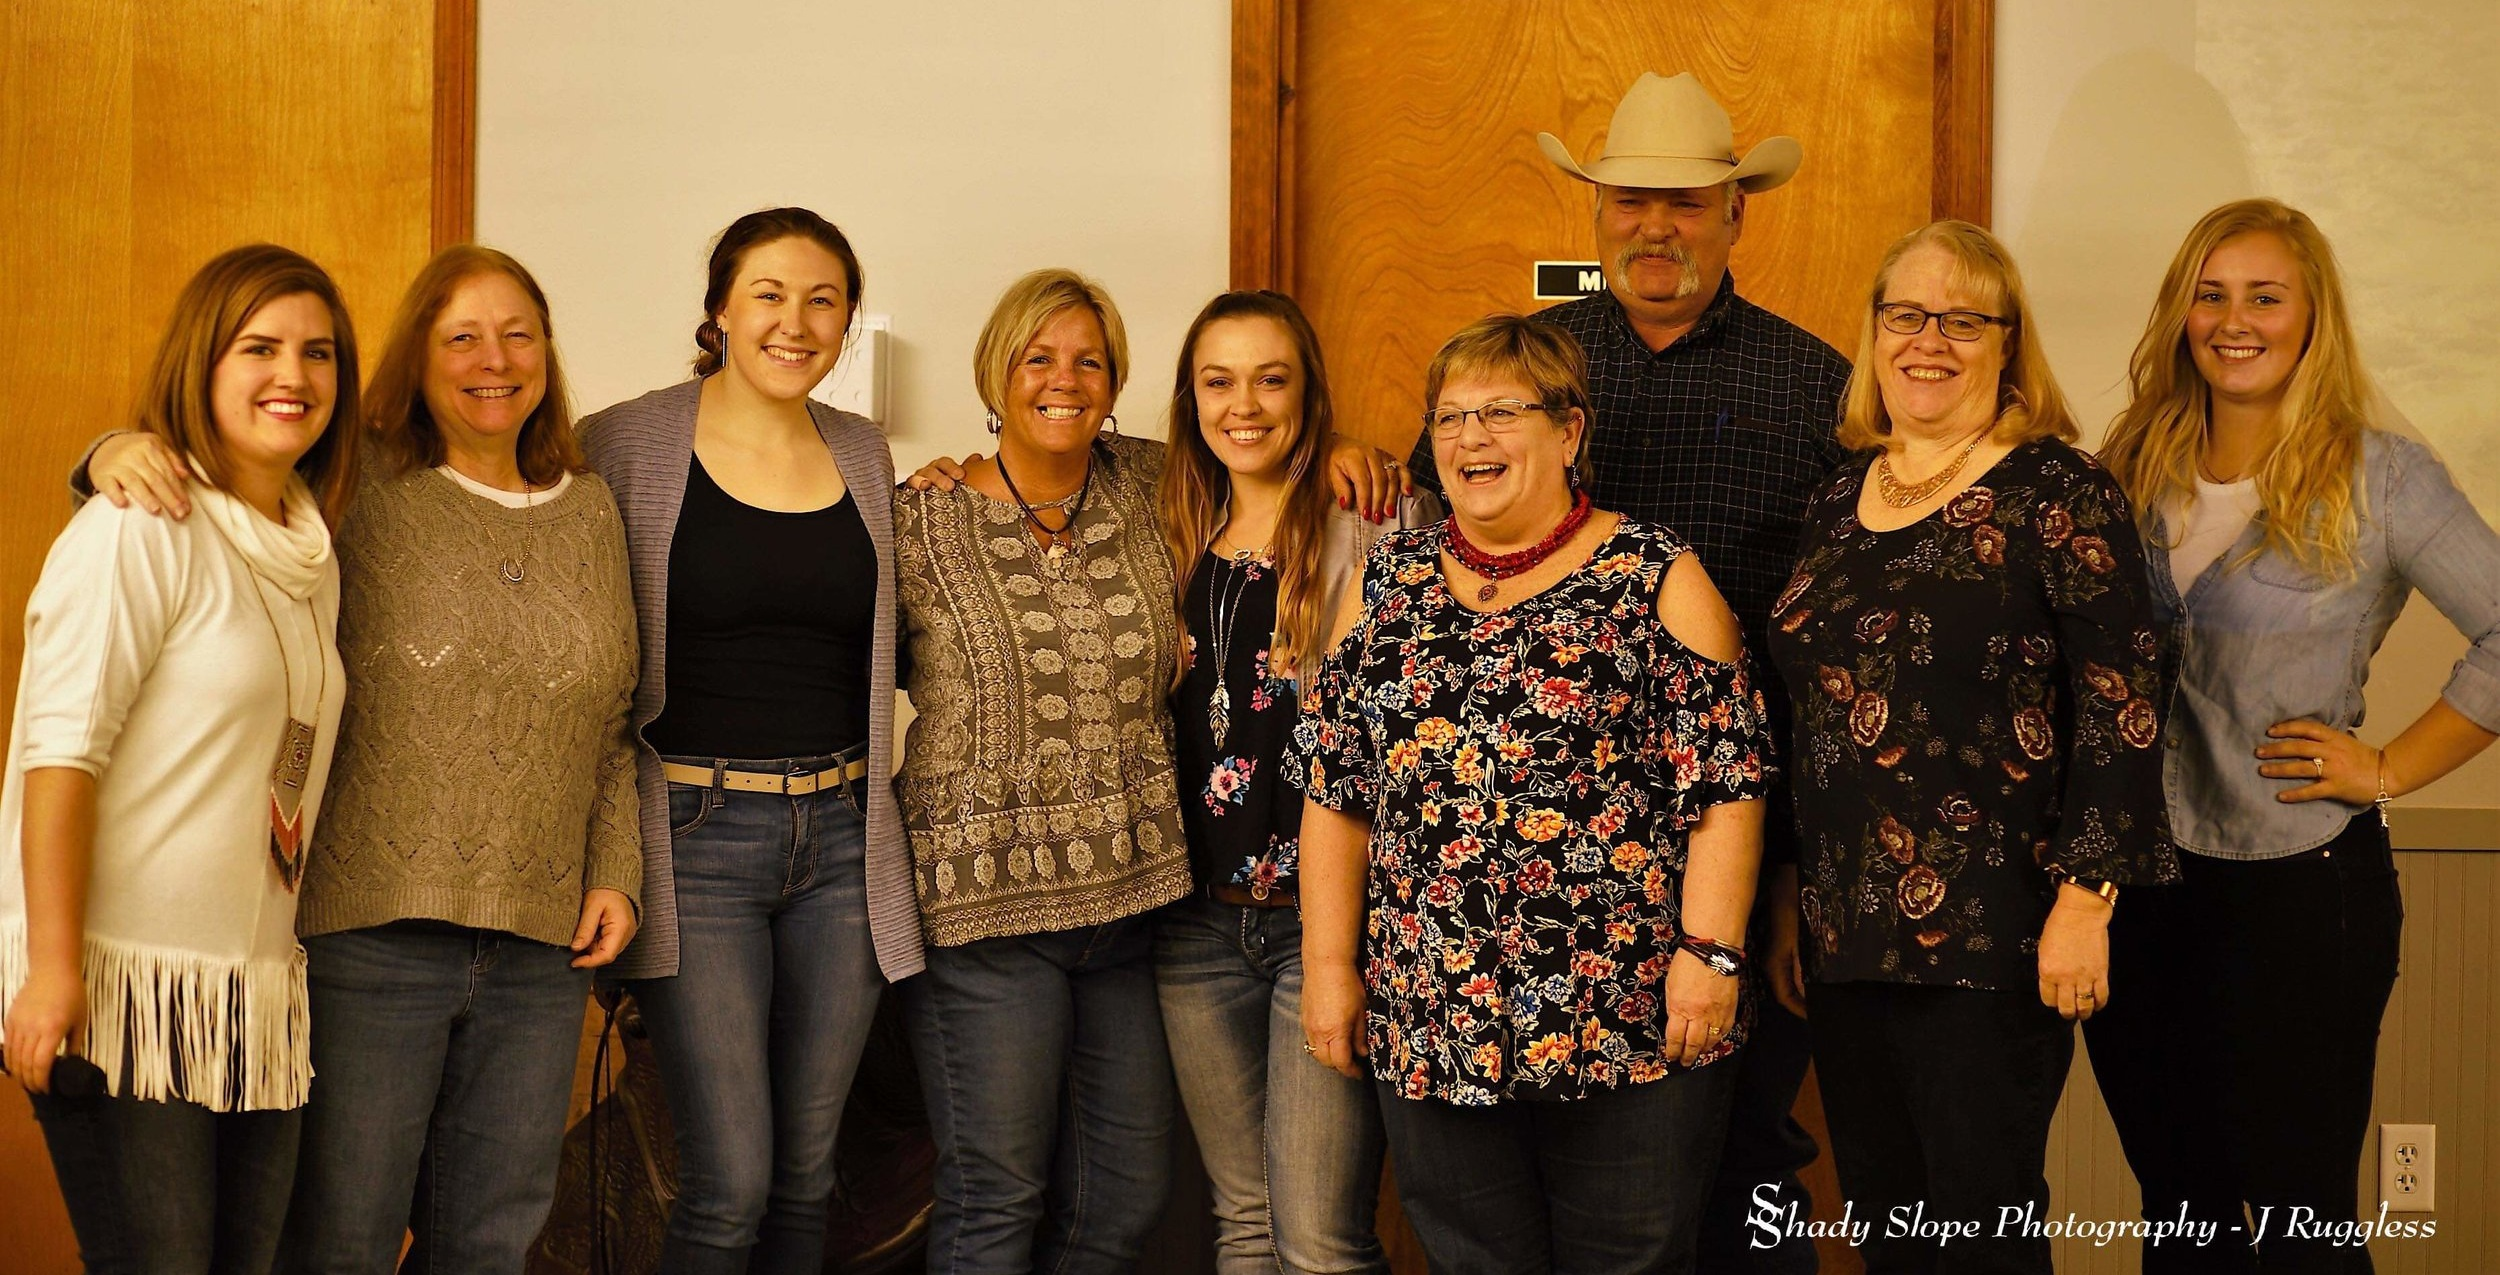 Left to right: Toni blonde, edie luckett, Lisa filbrandt, Sam holwerda, kayla dewey, chris rantz, jim harroff, annette Crandall & Amanda Rottman